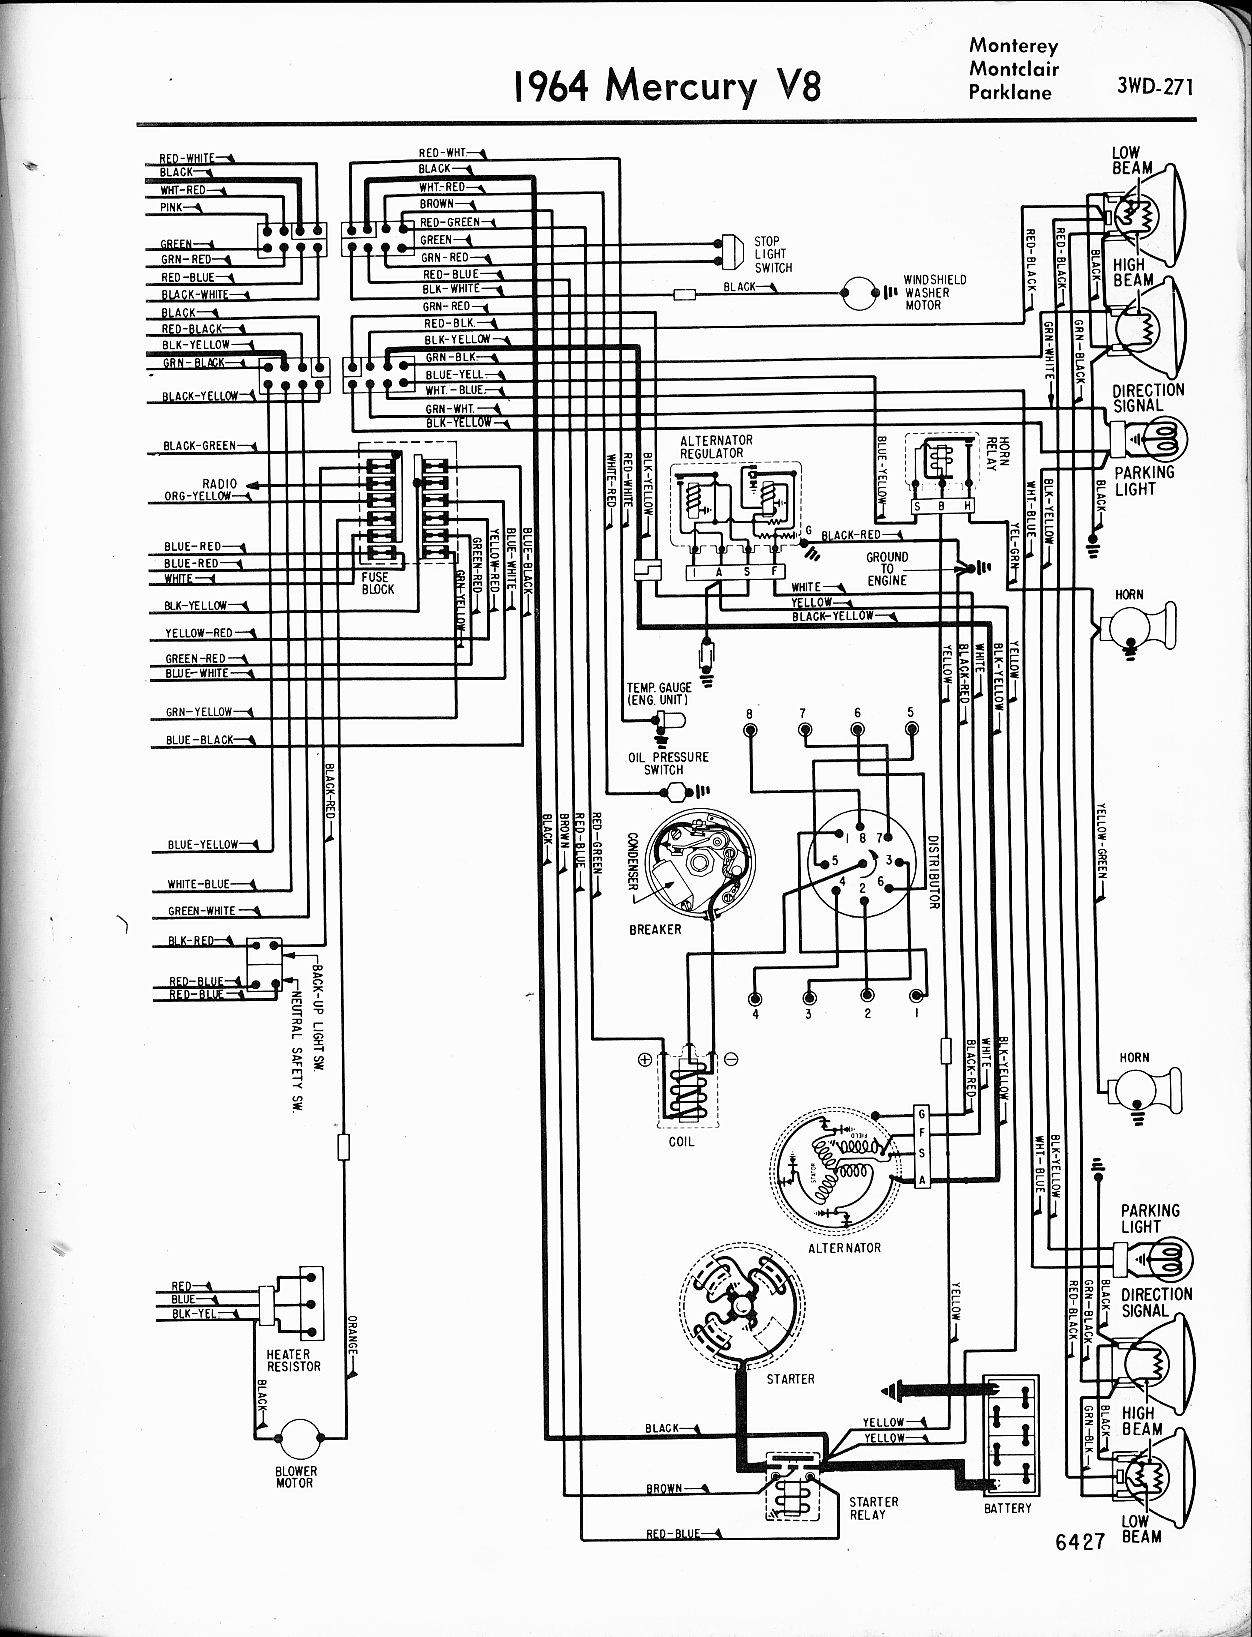 51 Mercury Wiring Diagram